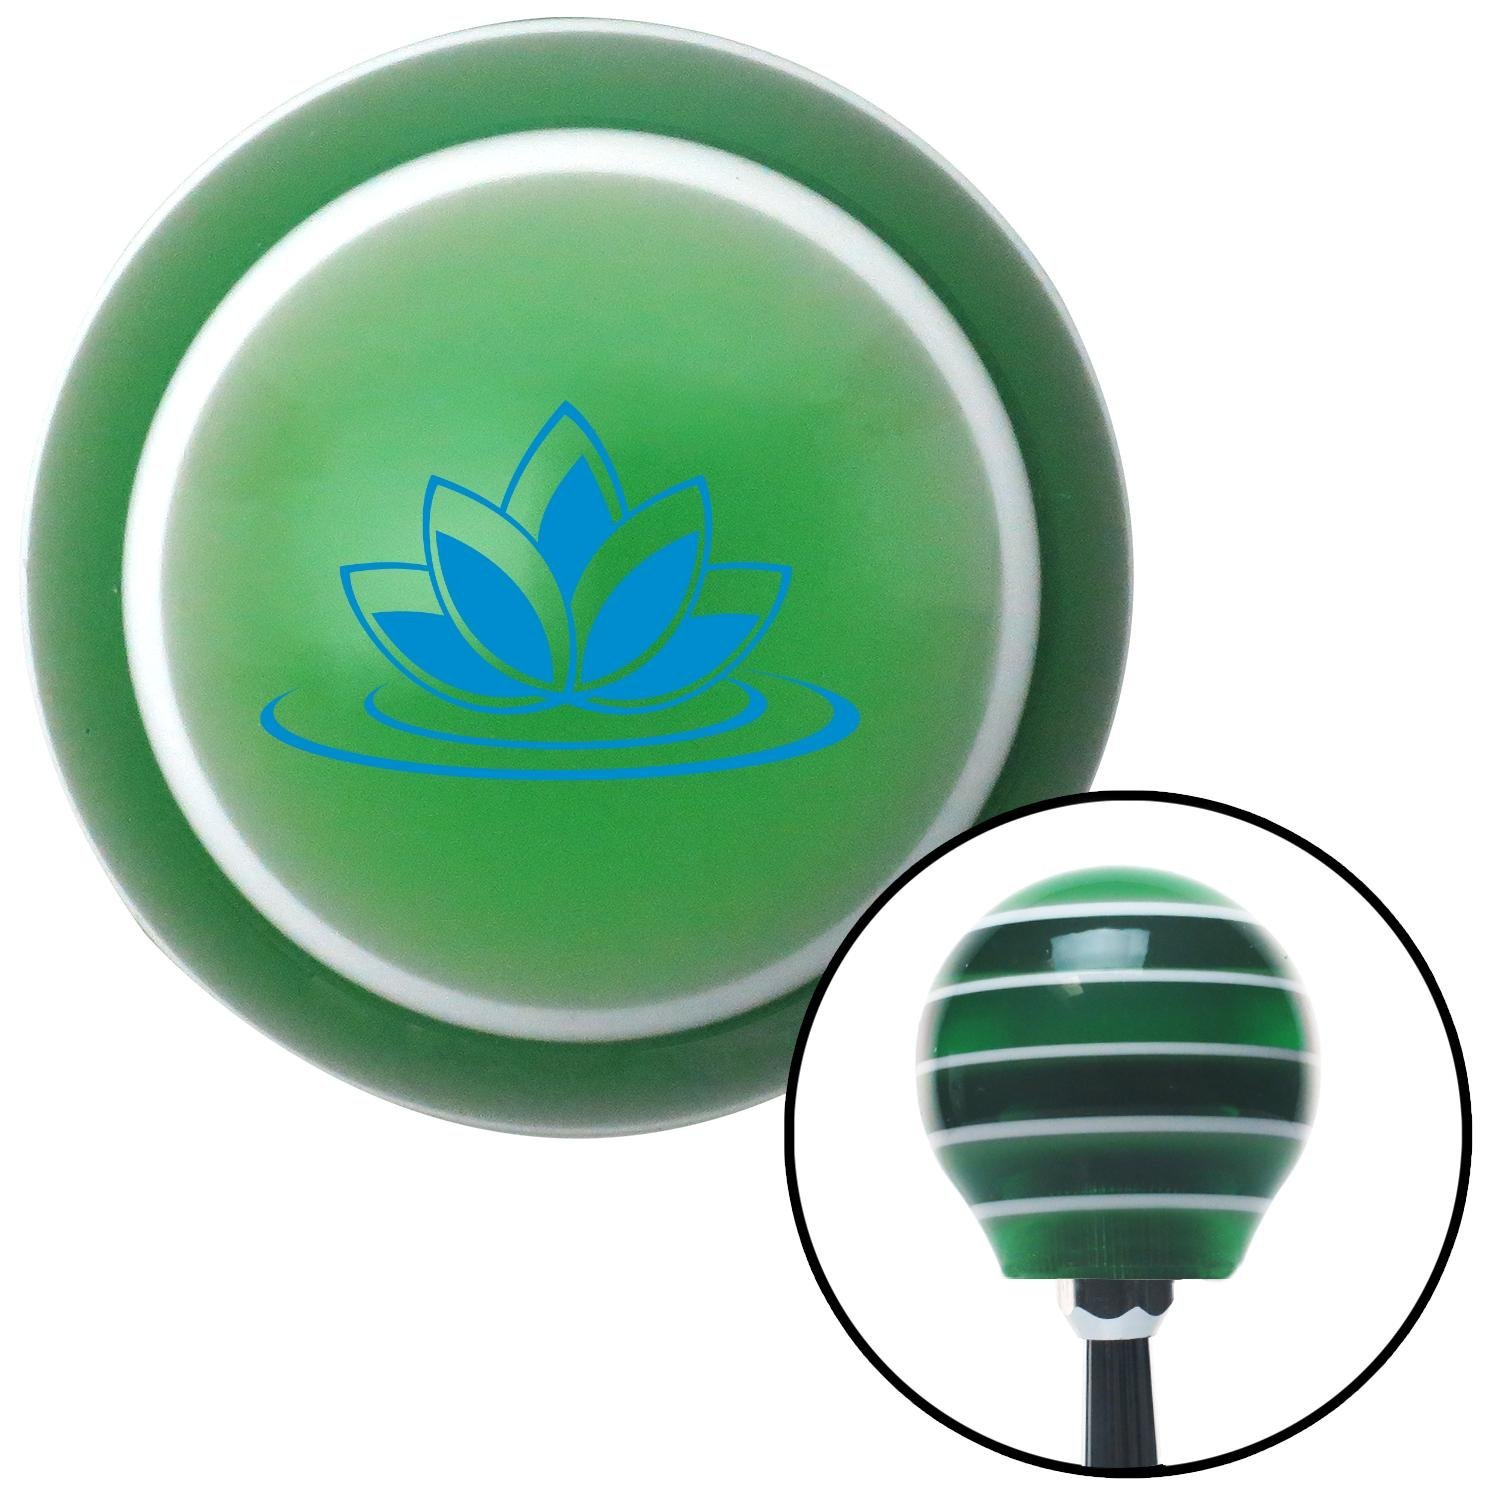 Blue Flower on Lilypad American Shifter 124330 Green Stripe Shift Knob with M16 x 1.5 Insert